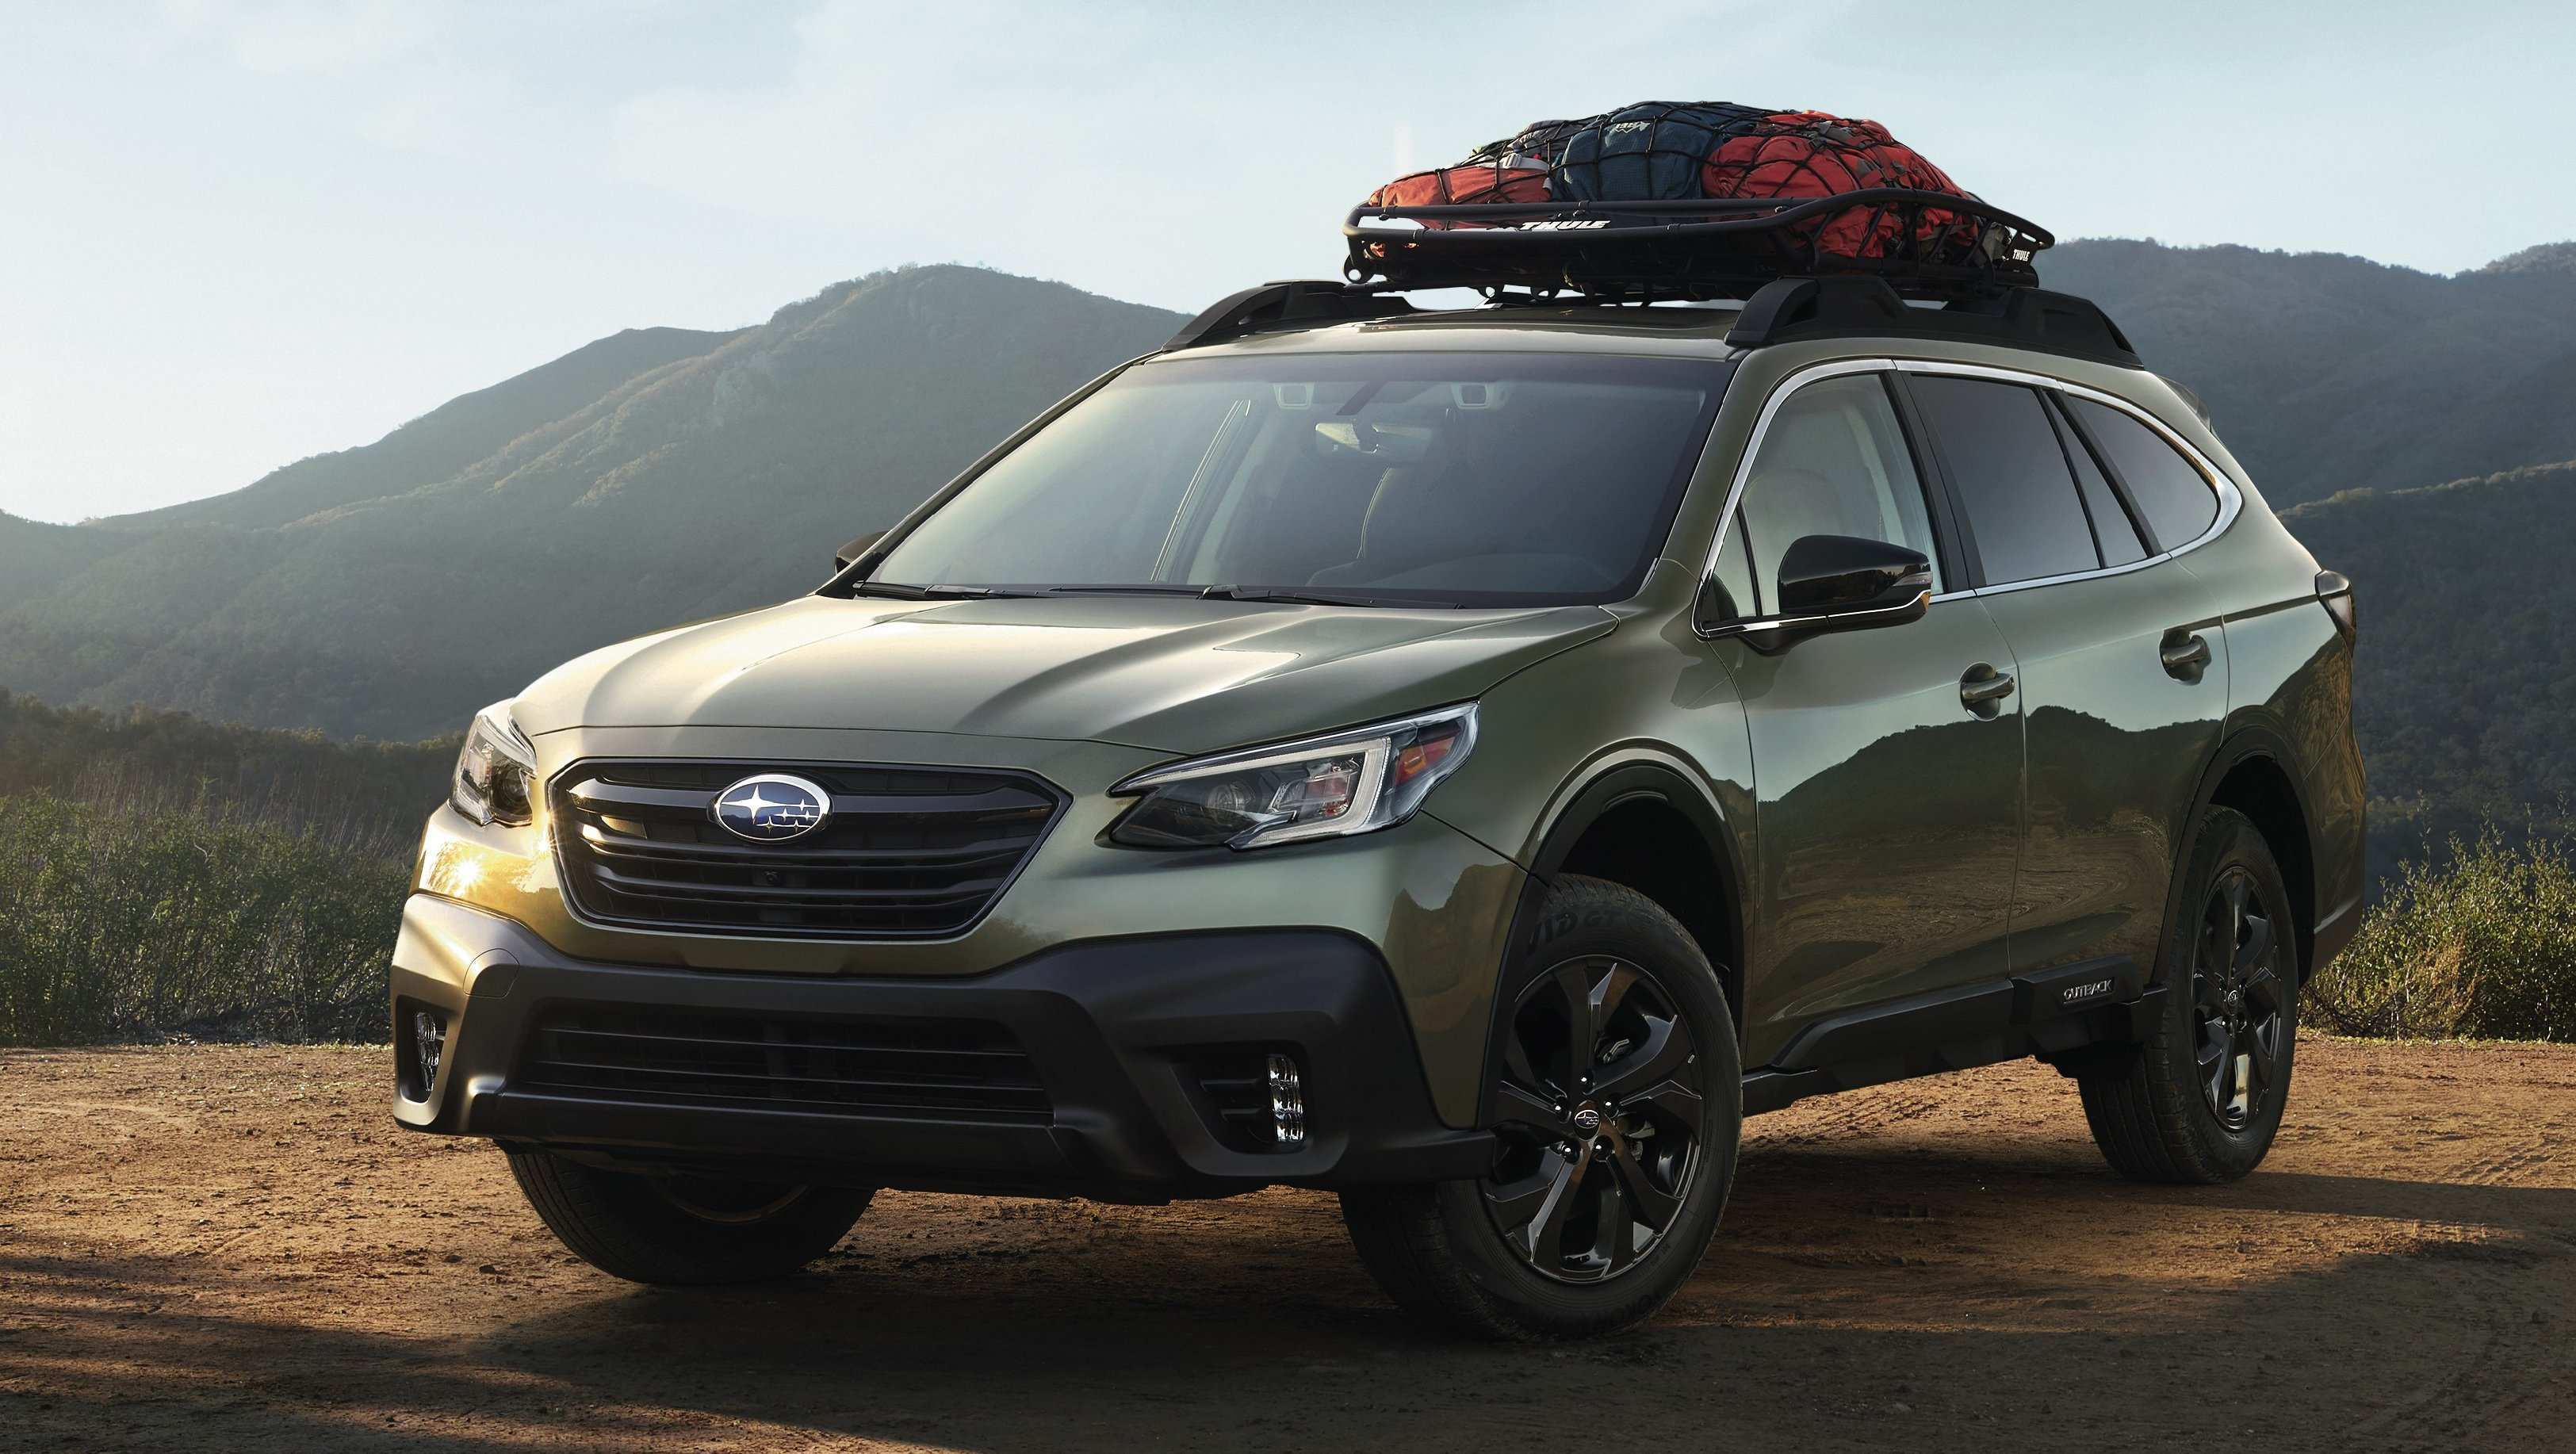 60 All New 2020 Subaru Outback Exterior Colors Release